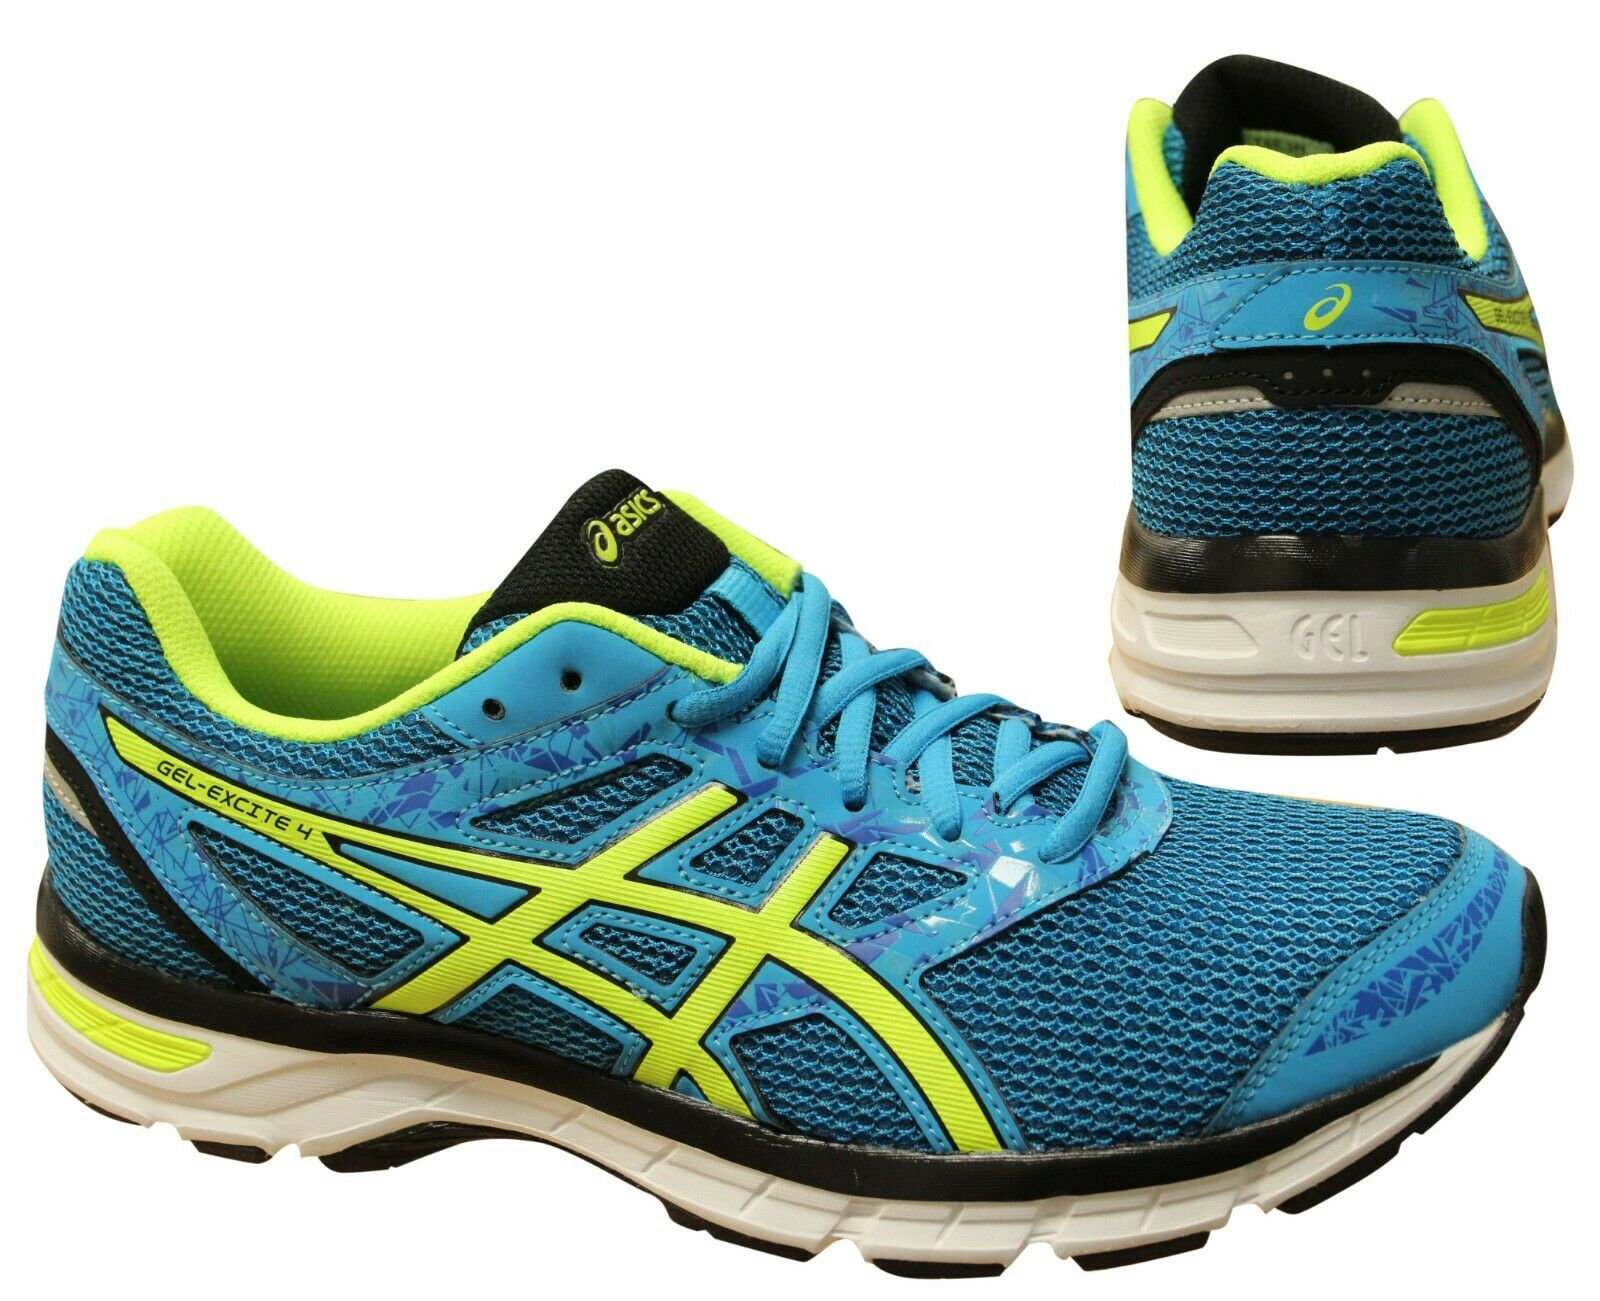 Reunión Decir barbería  Asics Gel-Excite 4 Blue Yellow Lace Up Mens Running Trainers T6E3N 4107  B92A | eBay